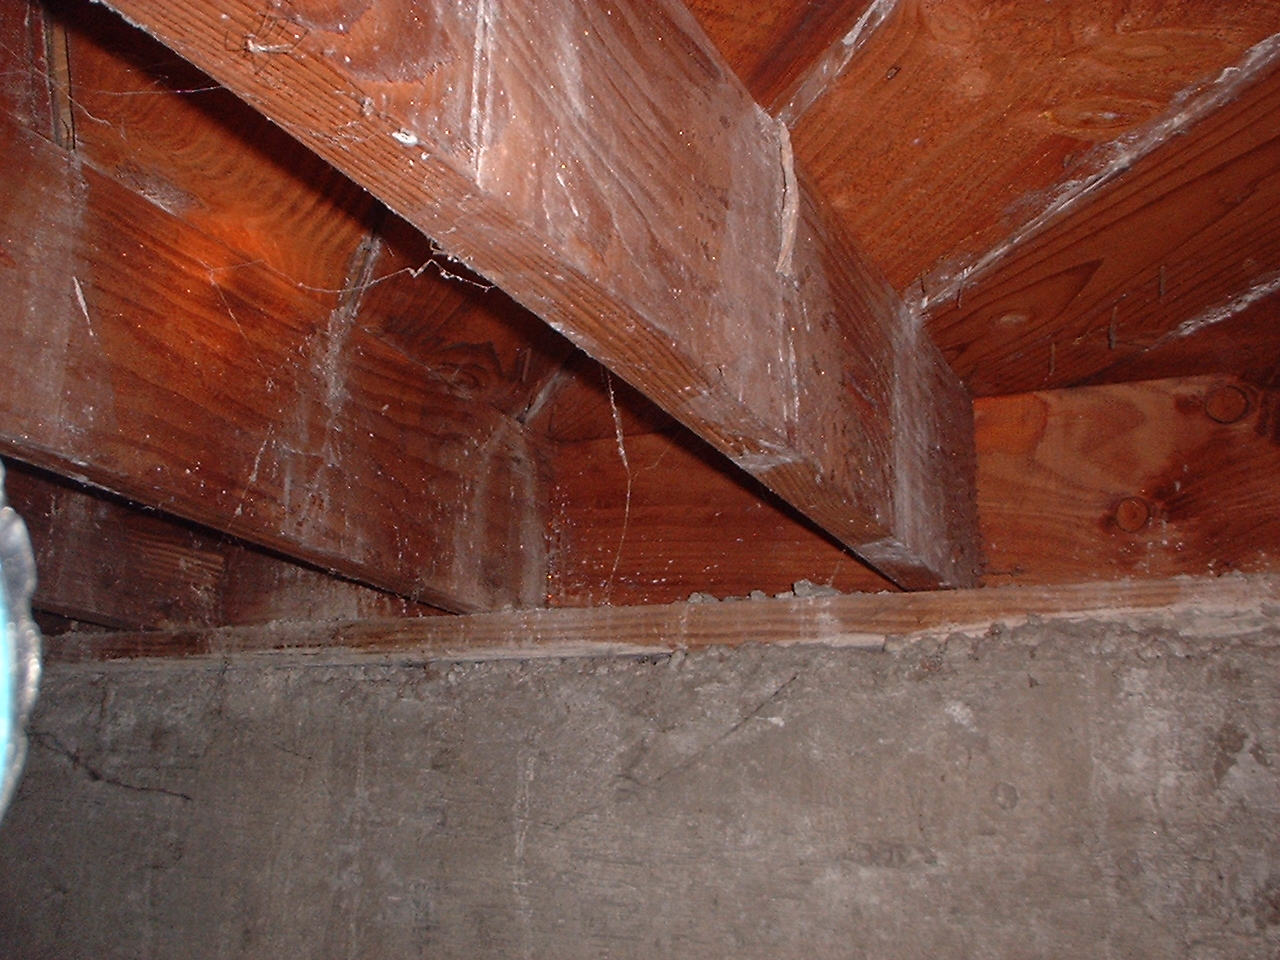 Mold, mineral deposits, or what??? (hardwood floors, smell ...